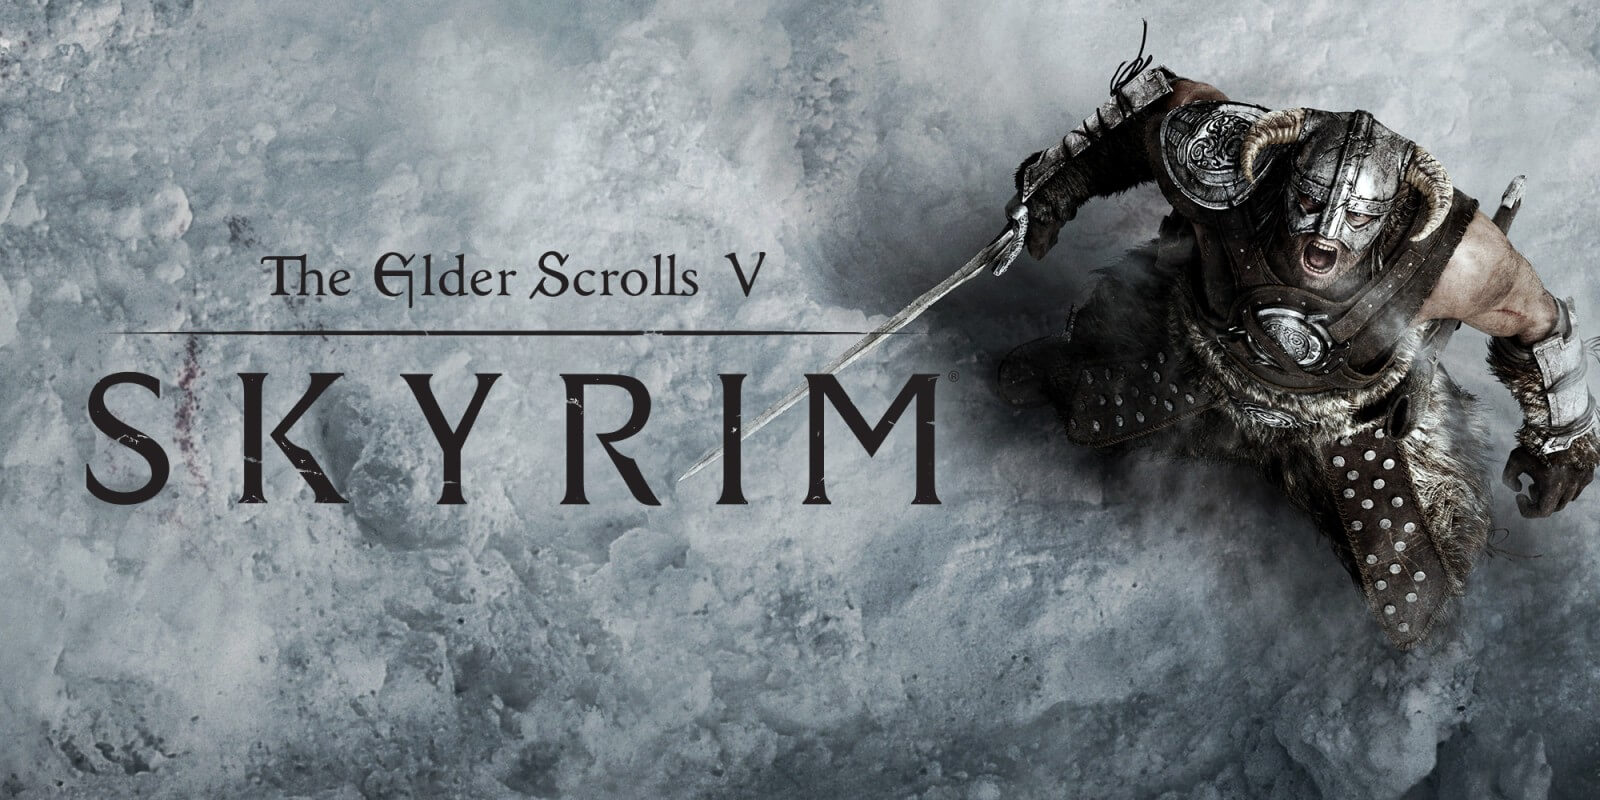 The creatures of the Nirn mod bring cats into The Elder Scrolls V: Skyrim